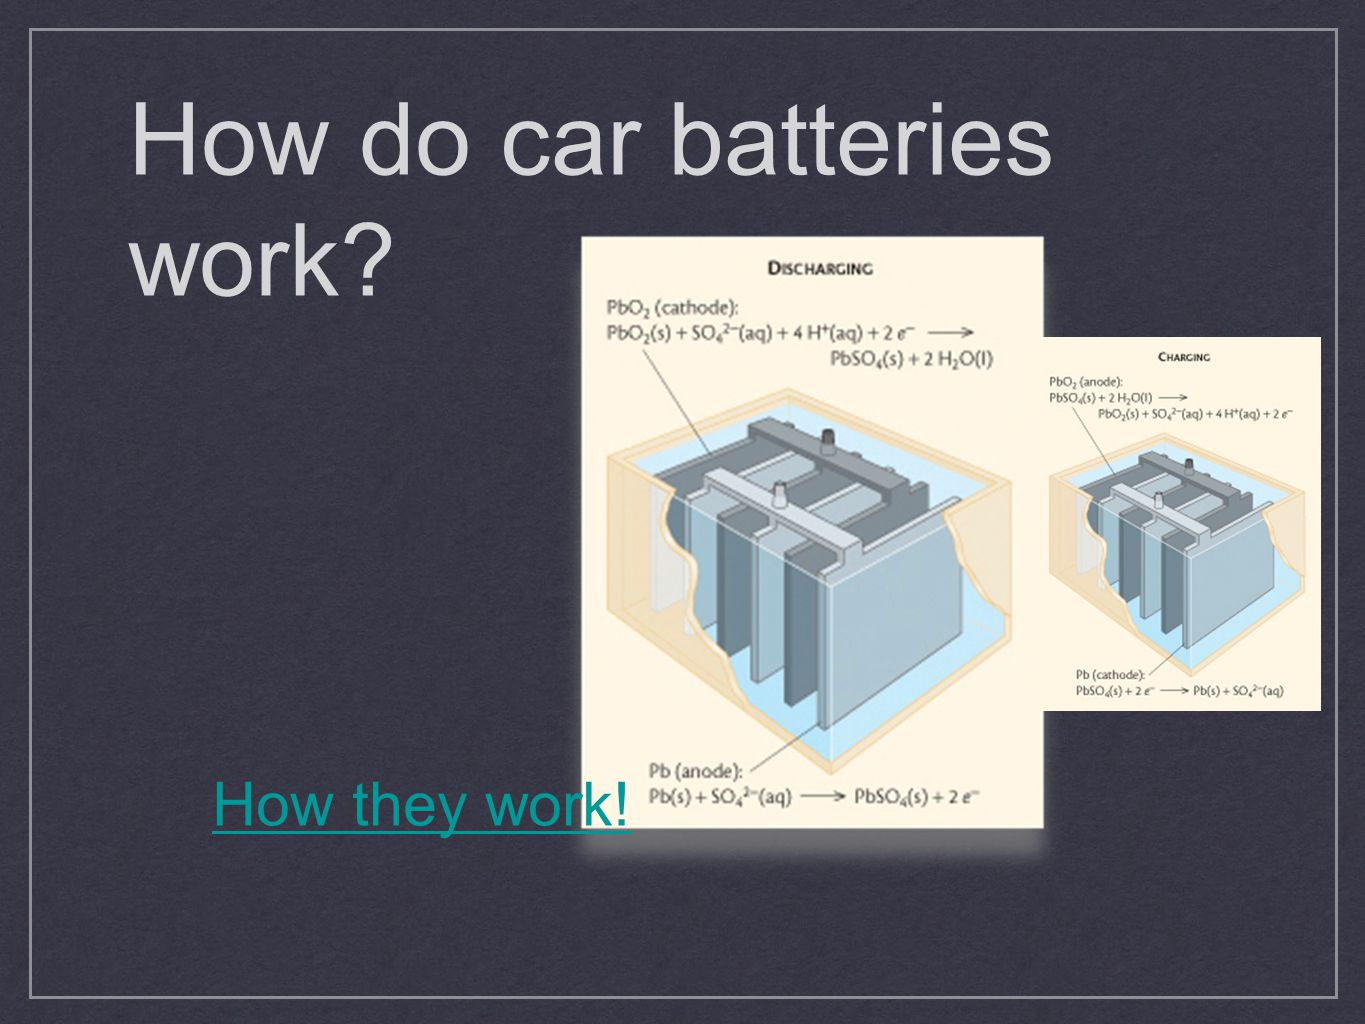 How do car batteries work